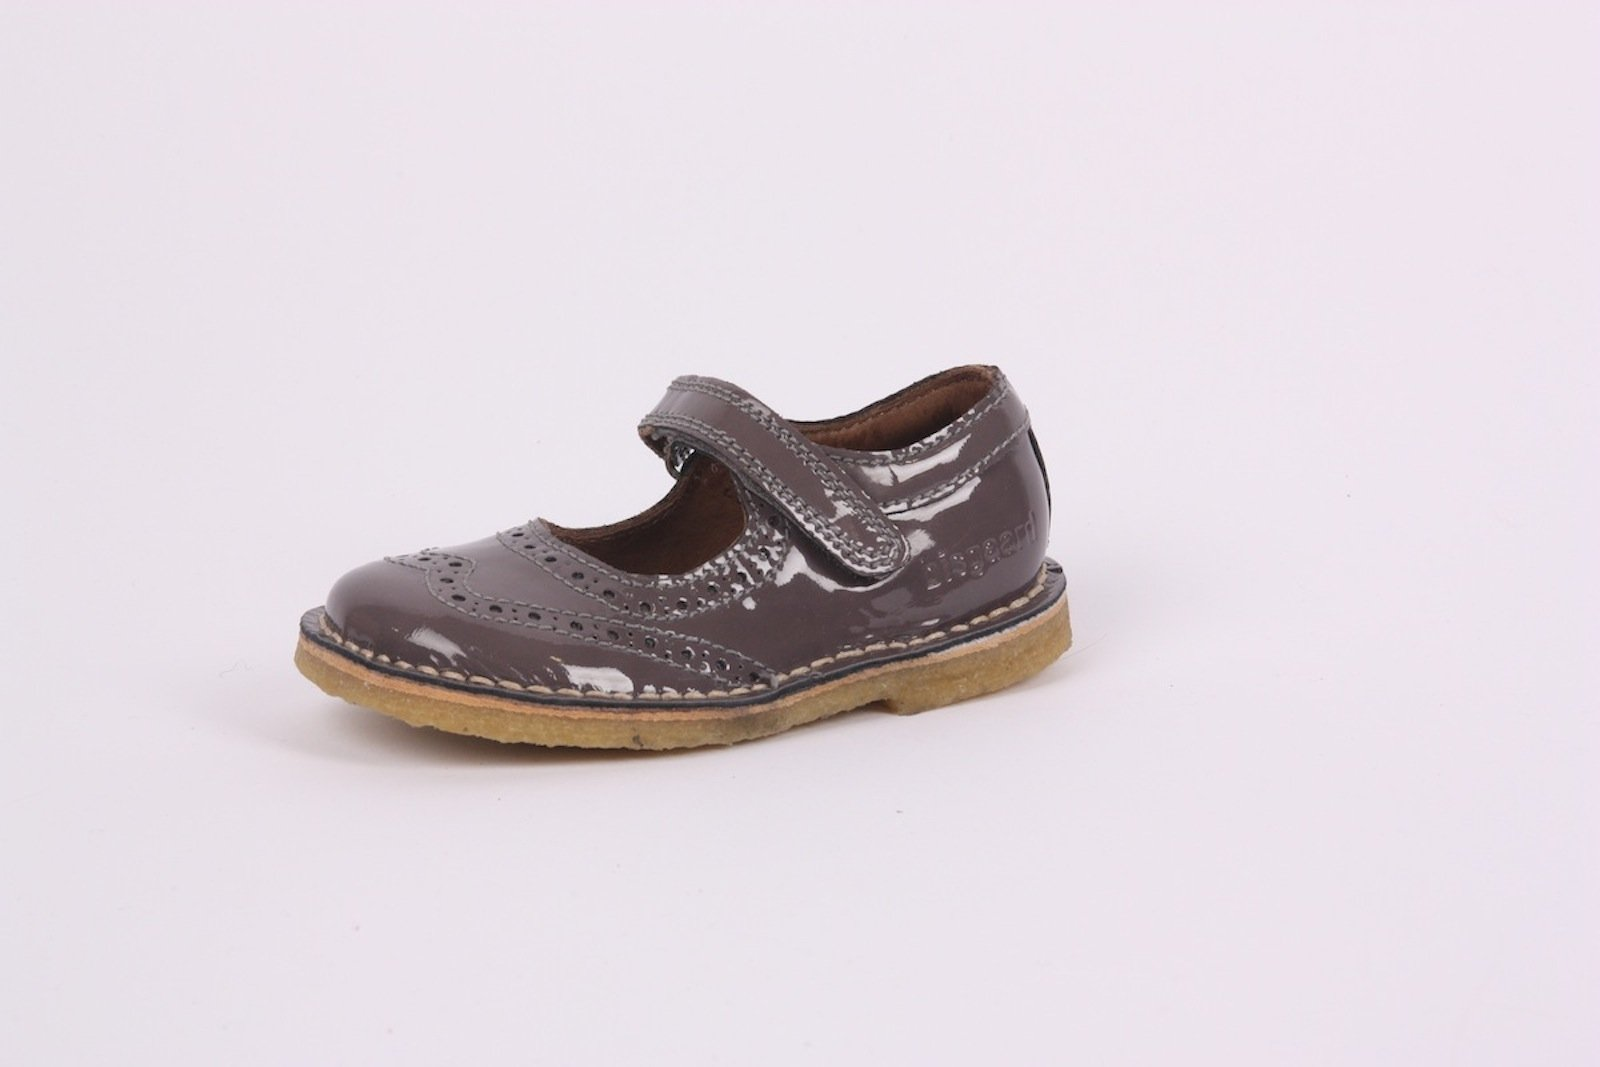 Bisgaard Mouse Brogue Patent Mary Janes